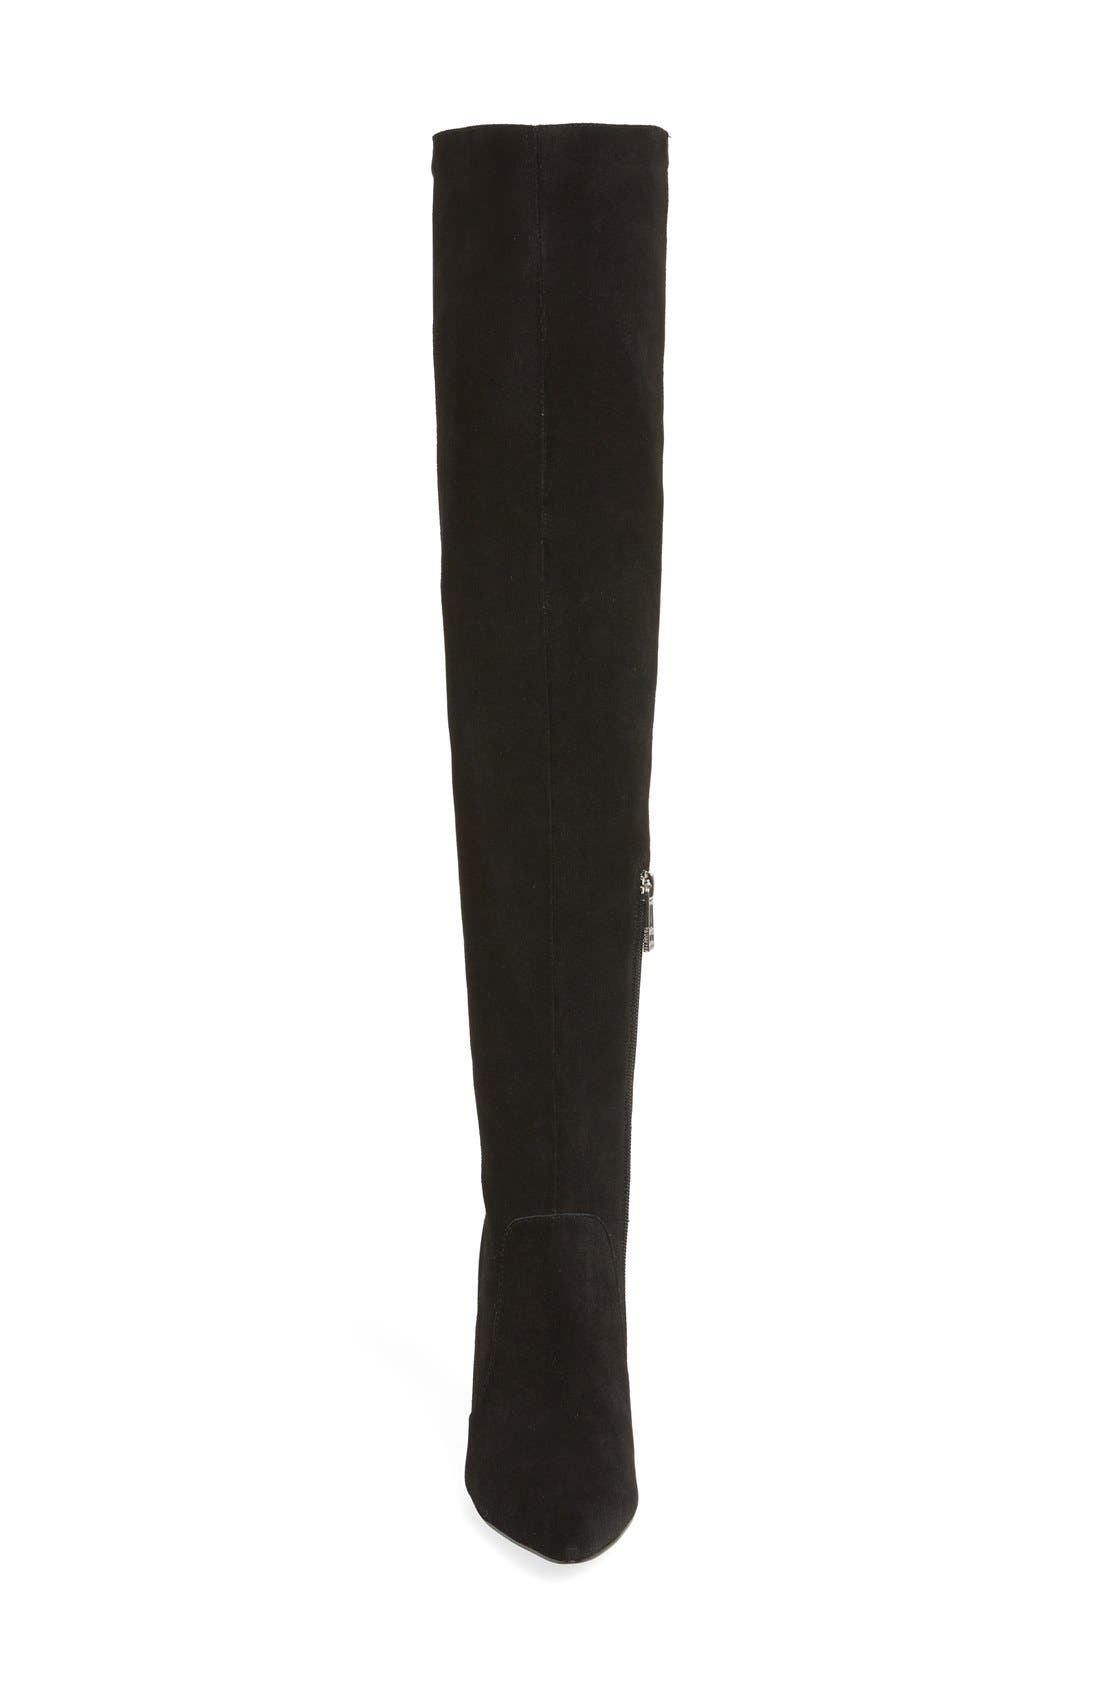 CHARLES BY CHARLES DAVID, 'Paso' Over The Knee Boot, Alternate thumbnail 3, color, 002